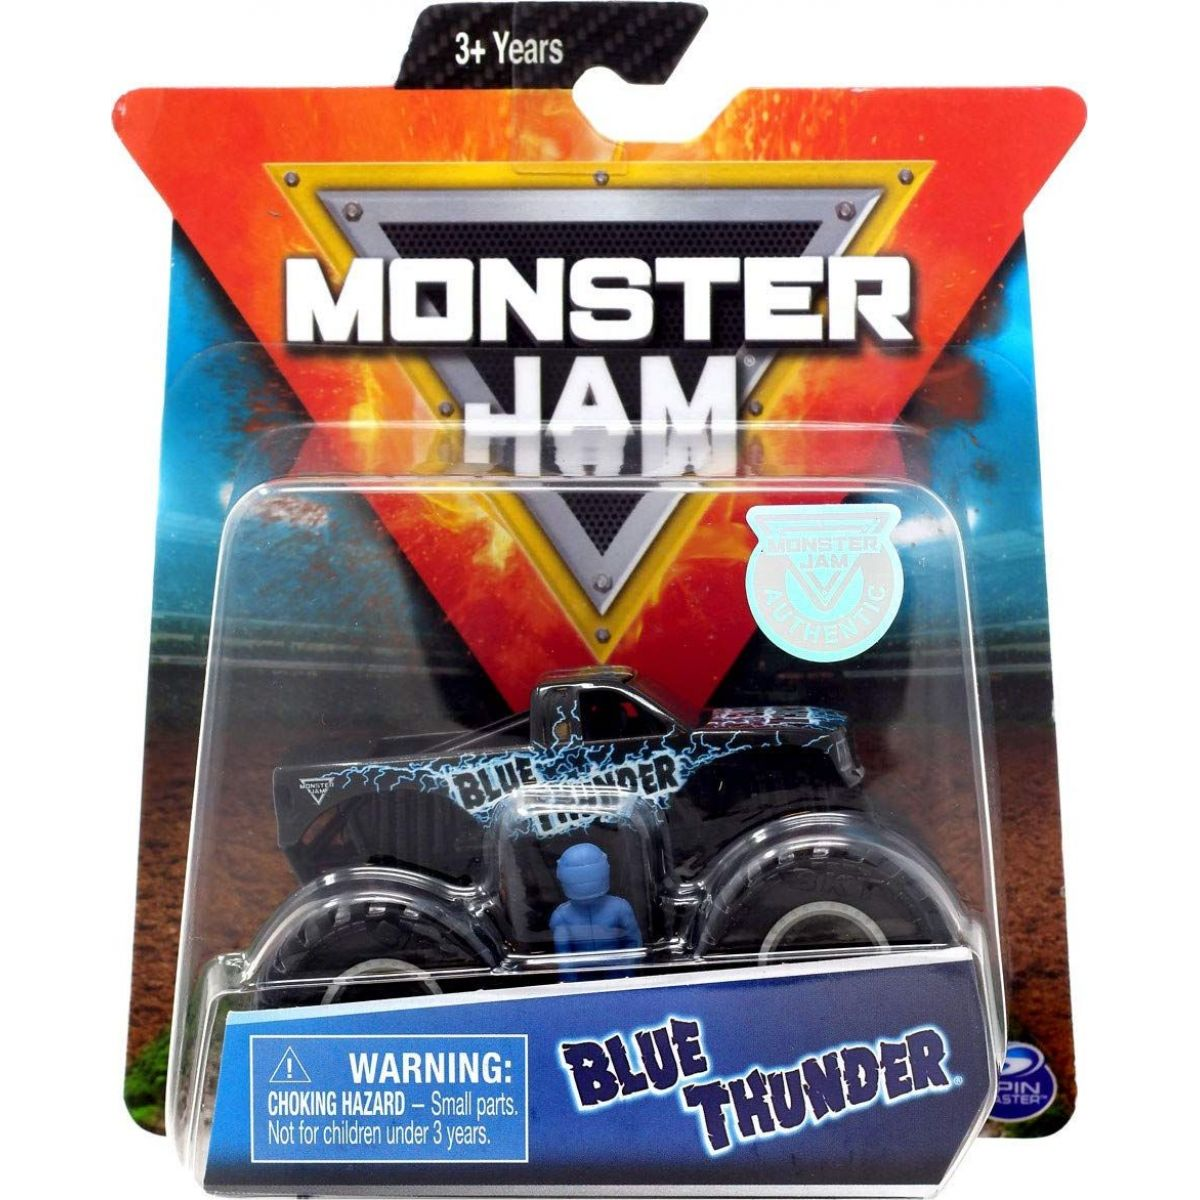 Monster Jam Sběratelská Die-Cast auta 1:64 Blue Thunder